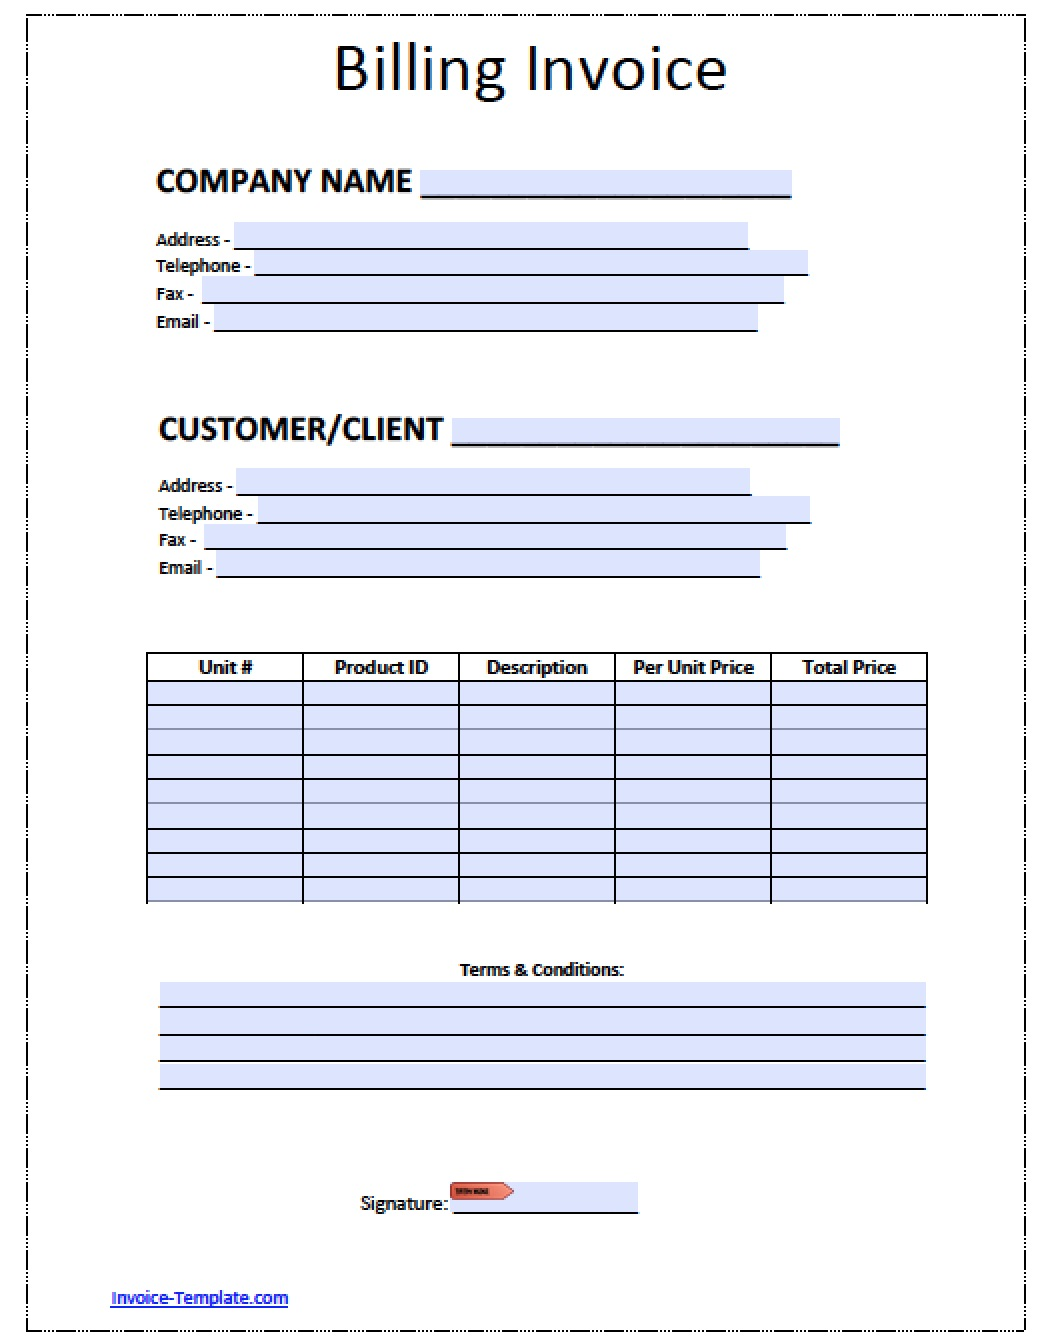 Billing Invoice Template Word Pdf  Microsoft Word Receipt Template Free